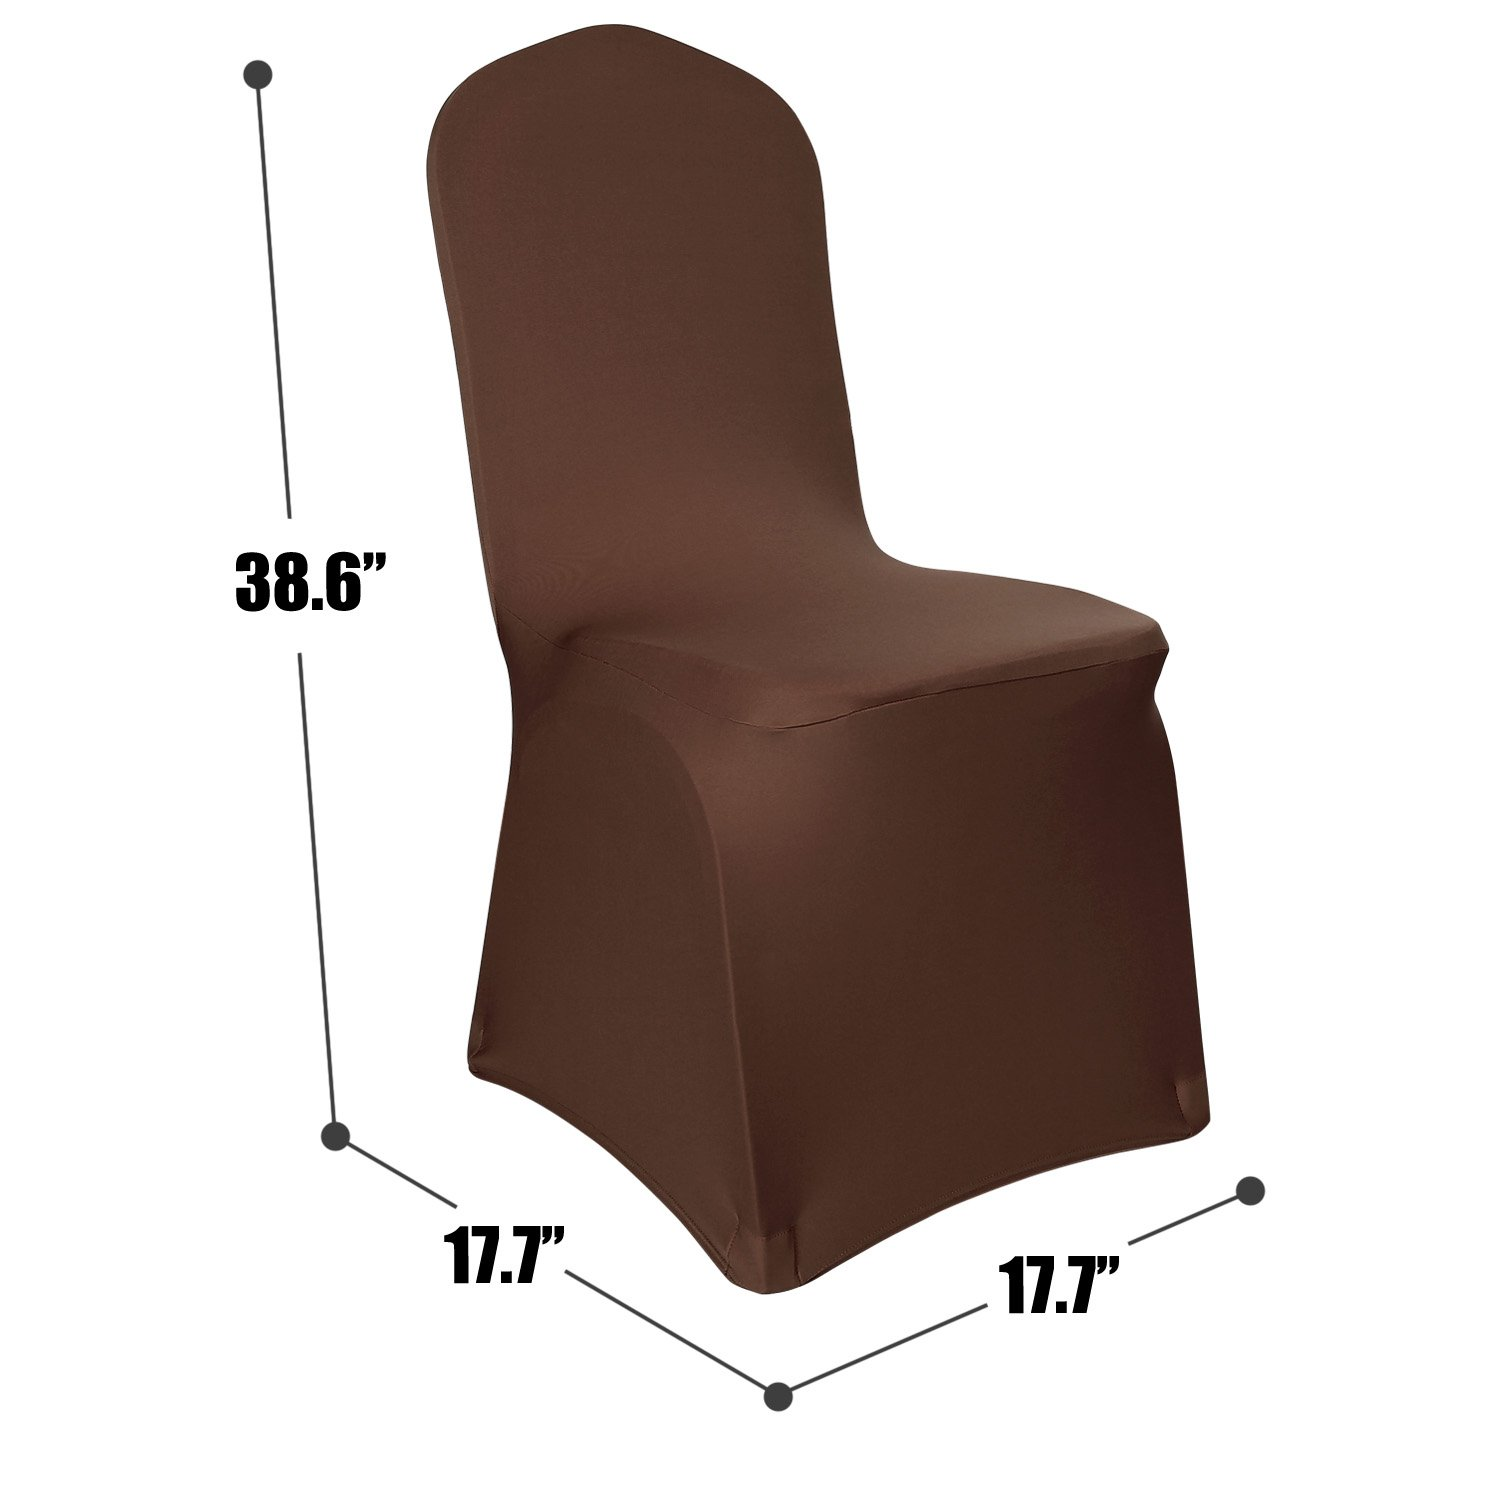 Deconovo Set of 4pcs Brown Color Stretch Chair Covers Spandex Dining Chair Cover for Wedding Banquet Party by Deconovo (Image #3)